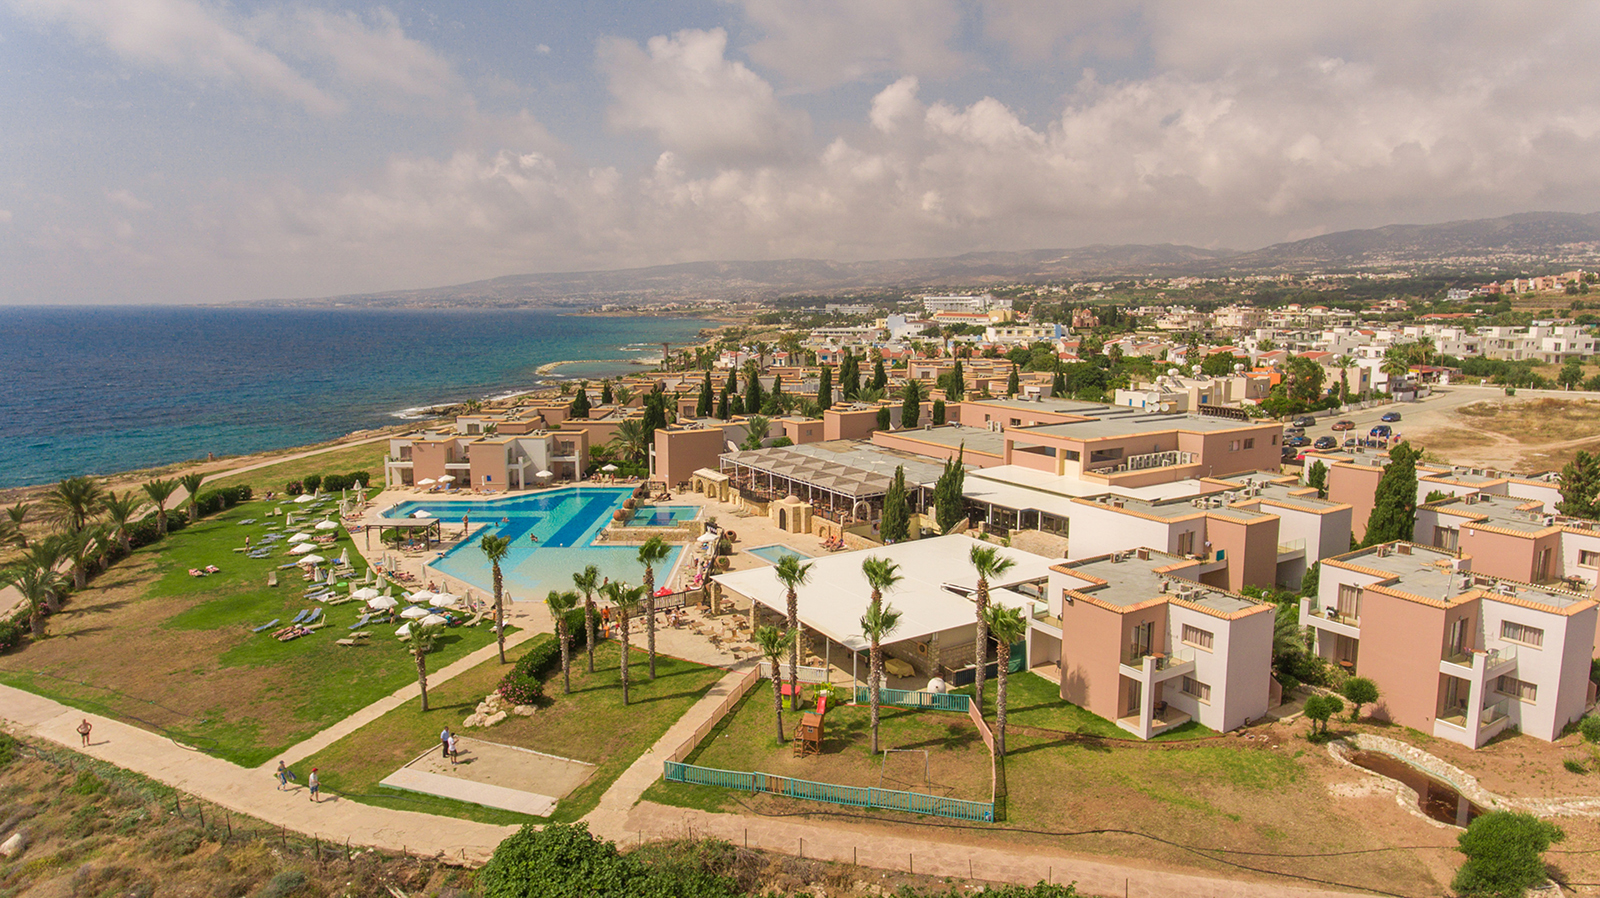 Luxury hotels in Paphos